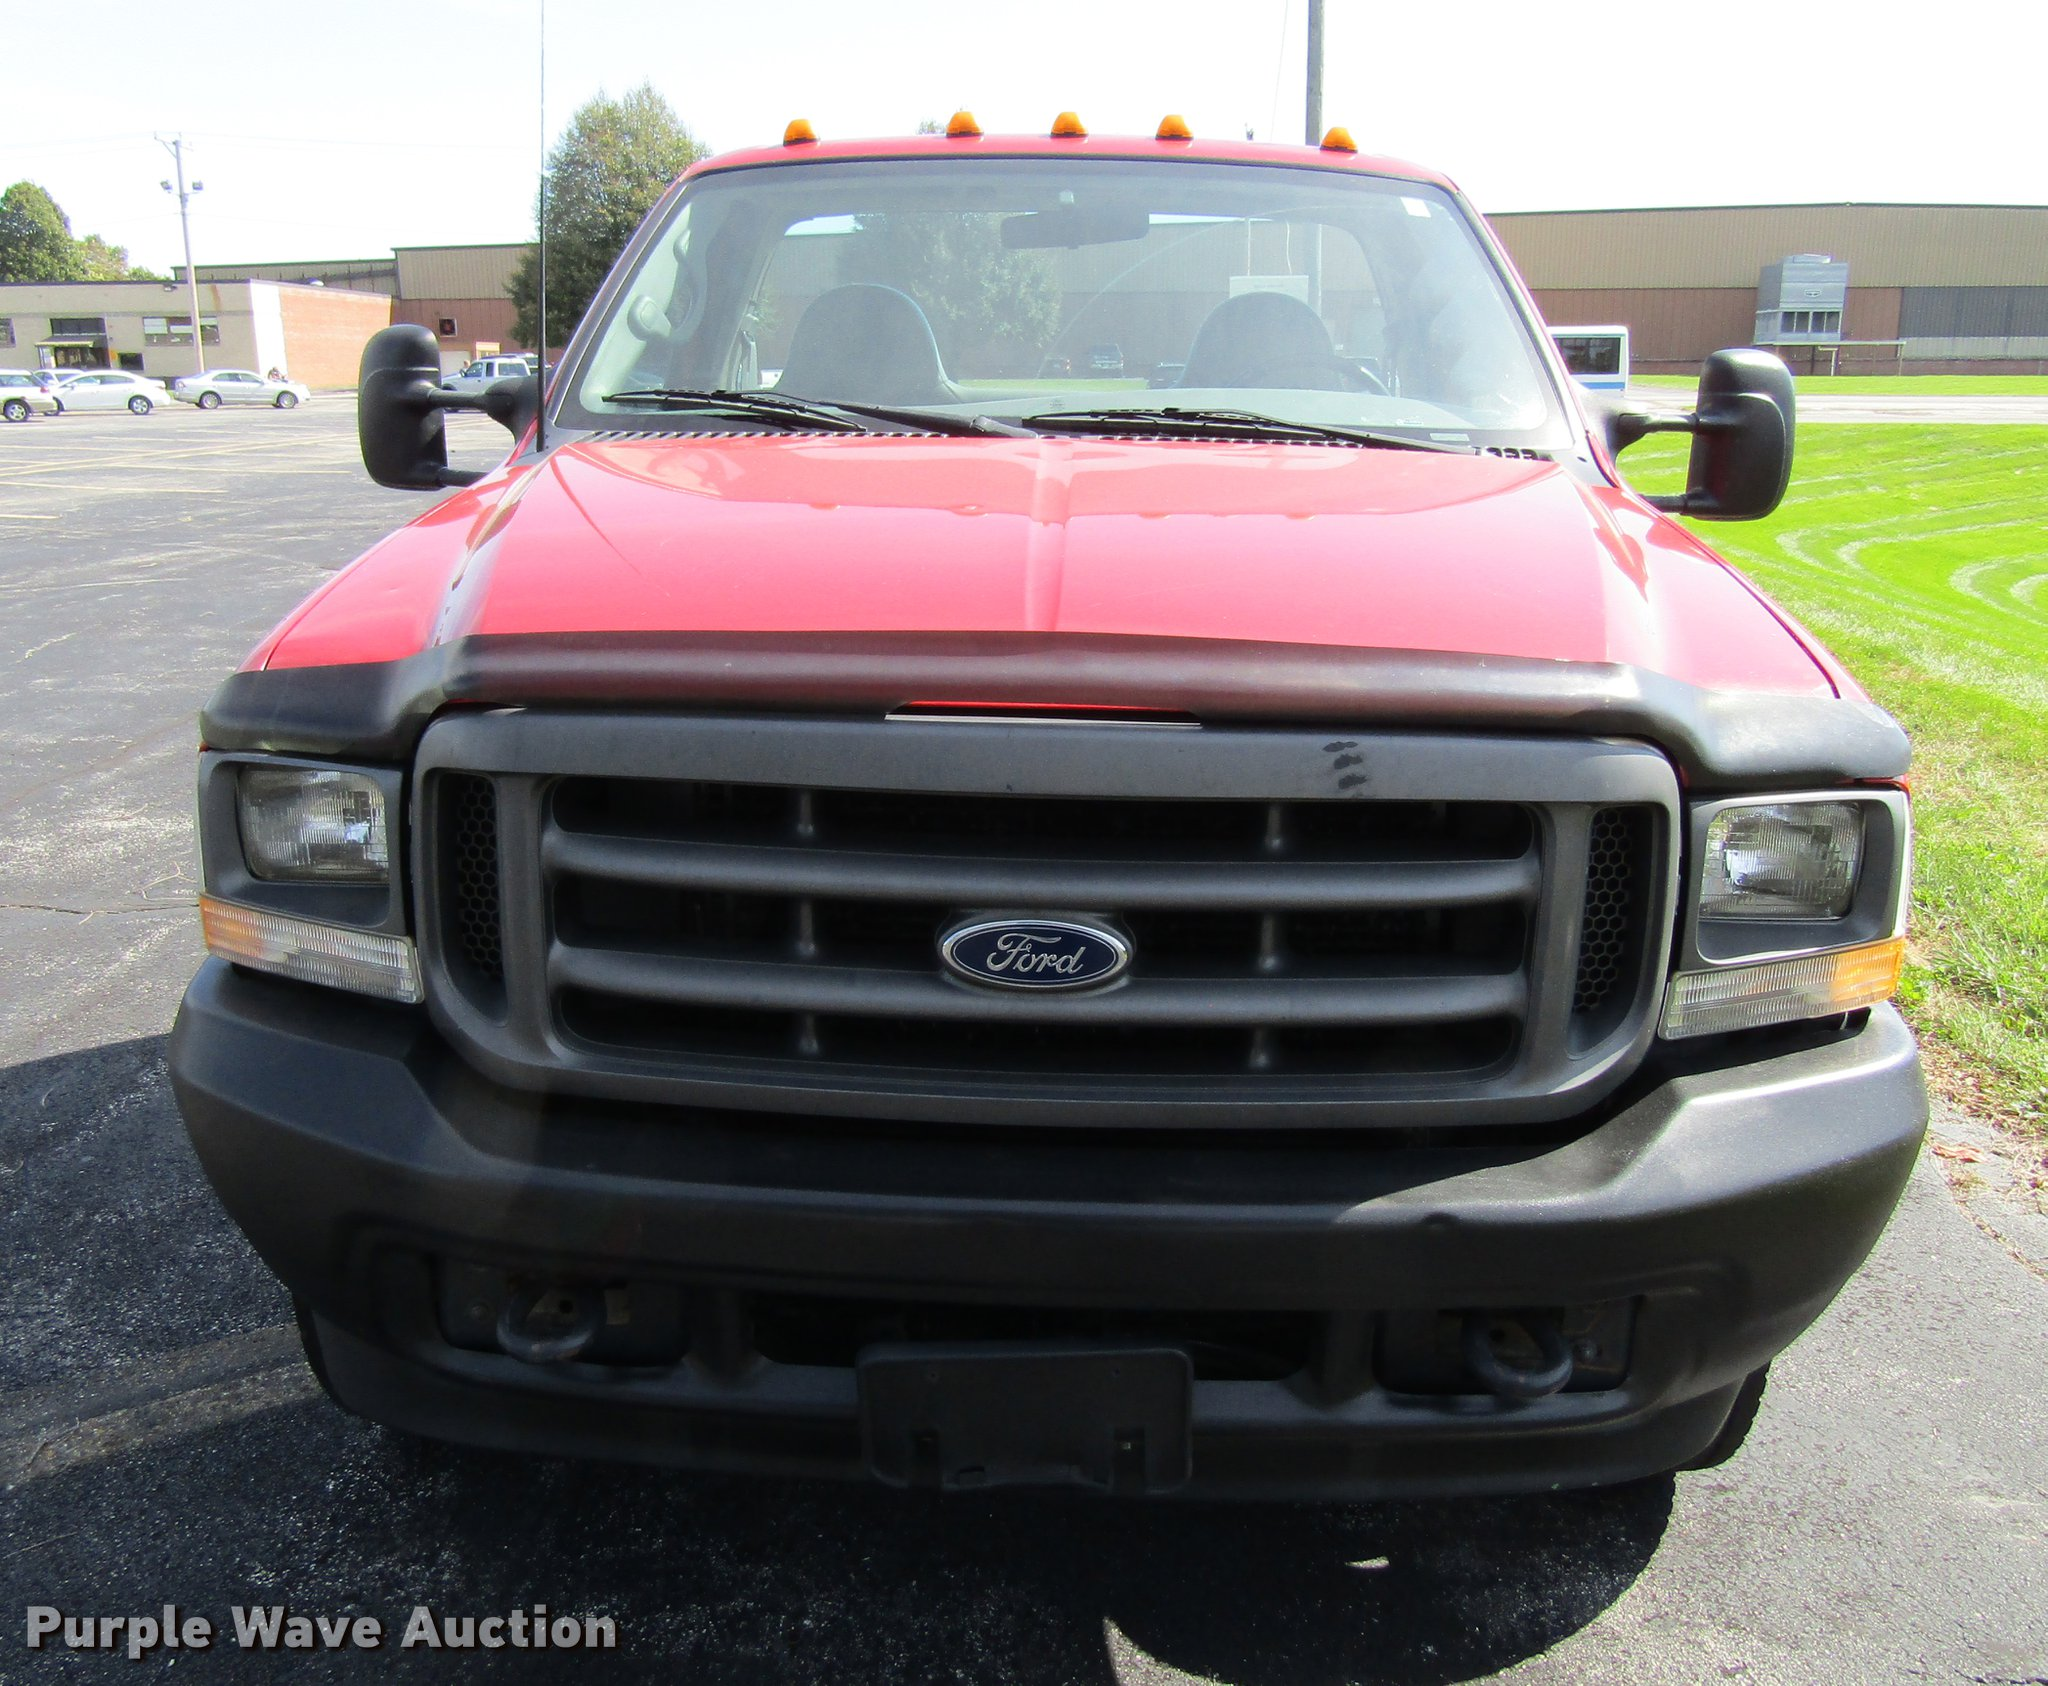 b097a0295a ... 2002 Ford F450 Super Duty truck cab and chassis Full size in new window  ...